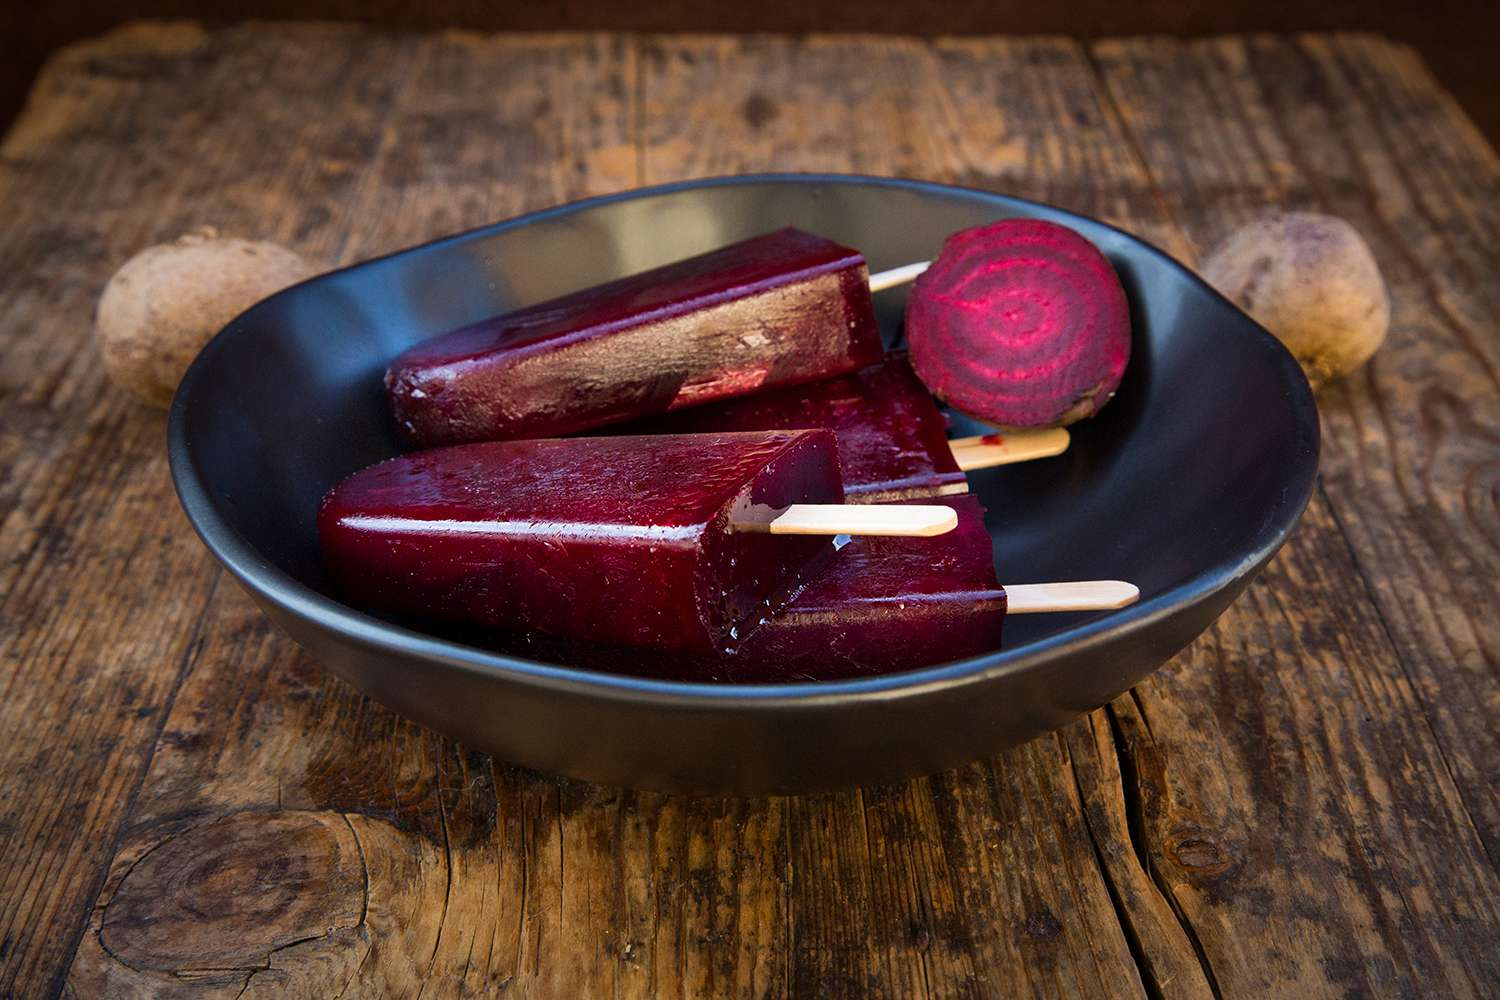 Bowl of homemade beetroot ice lollies on wood